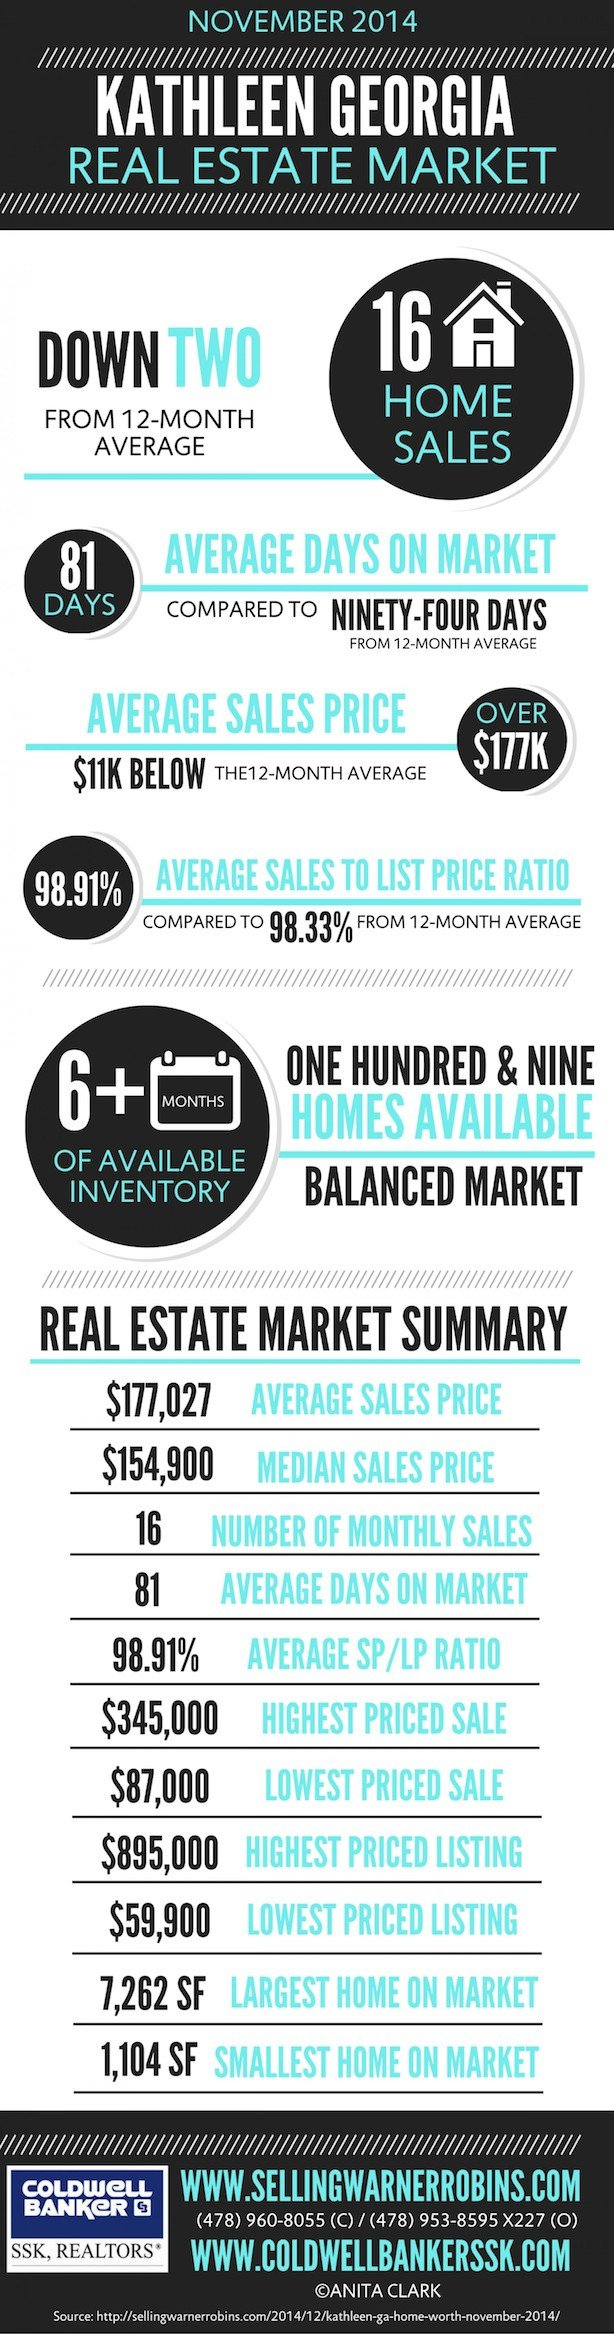 Real Estate Market Report Template How to Create Real Estate Reports